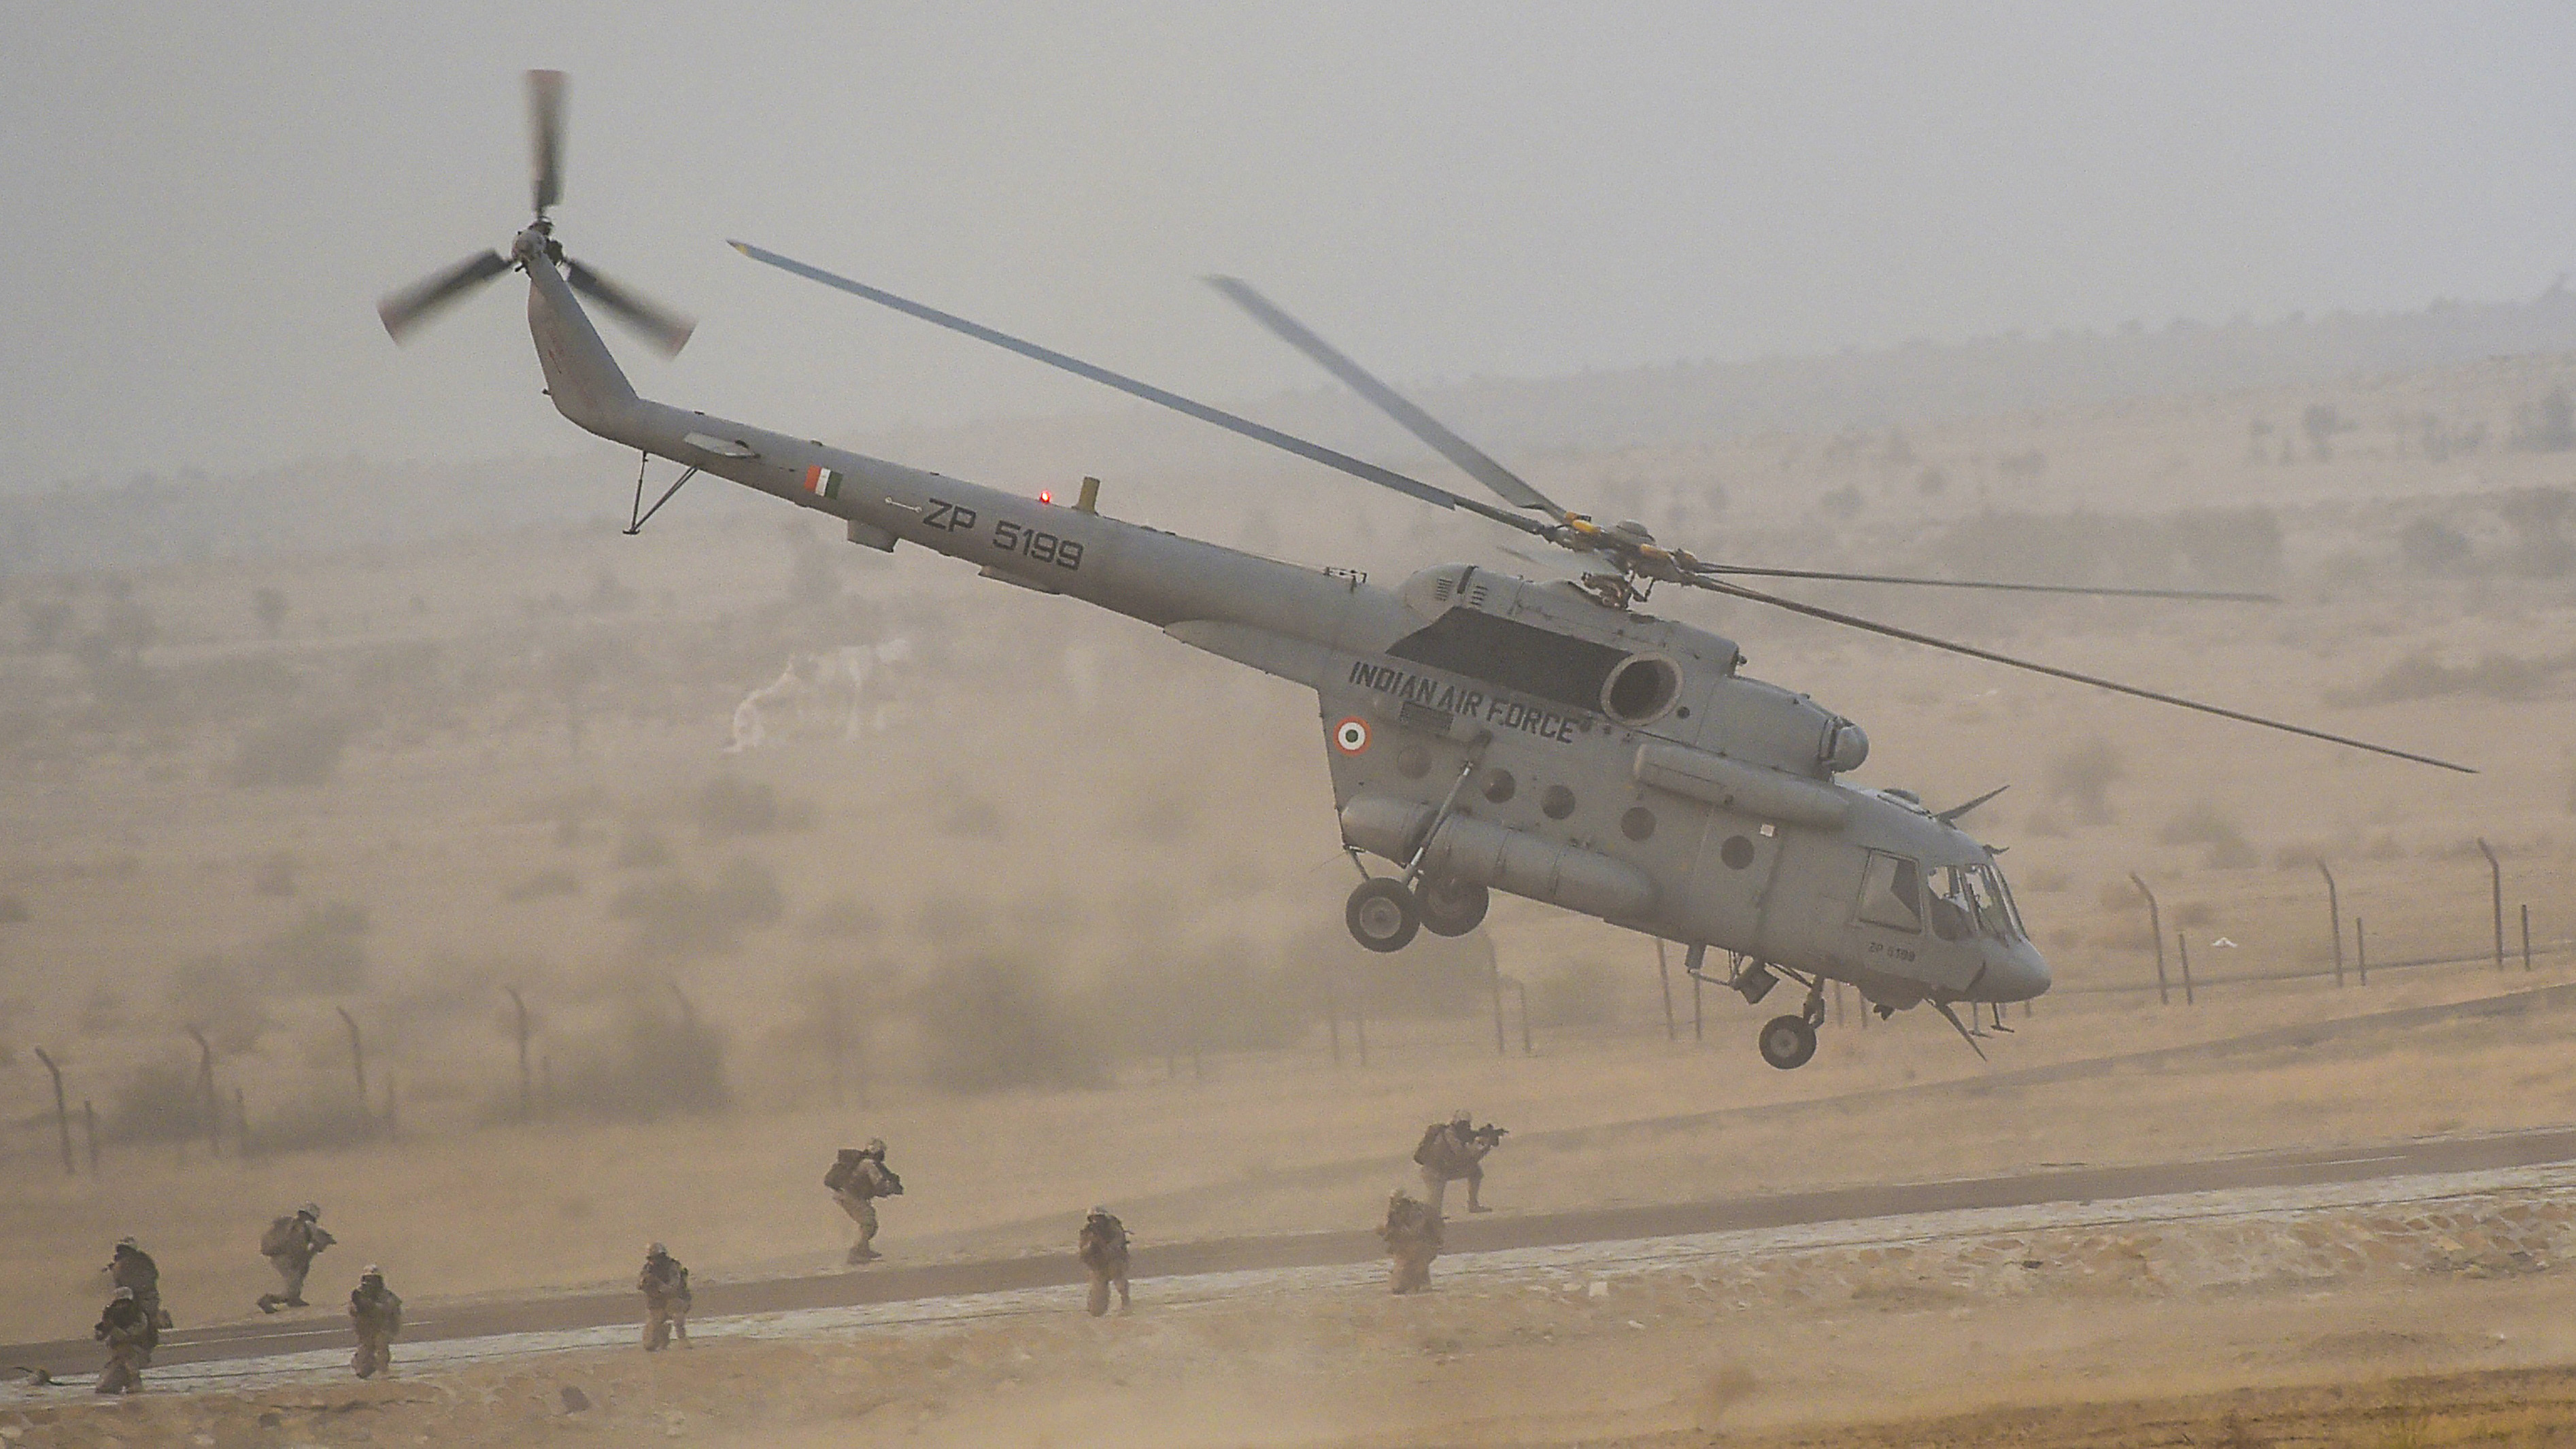 An Indian Air Force (IAF) helicopter takes off after dropping IAF's Garud commandos during 'Vayu Shakti' exercise at Pokharan, in Rajasthan on Feb. 16, 2019. (SAM PANTHAKY/AFP/Getty Images)